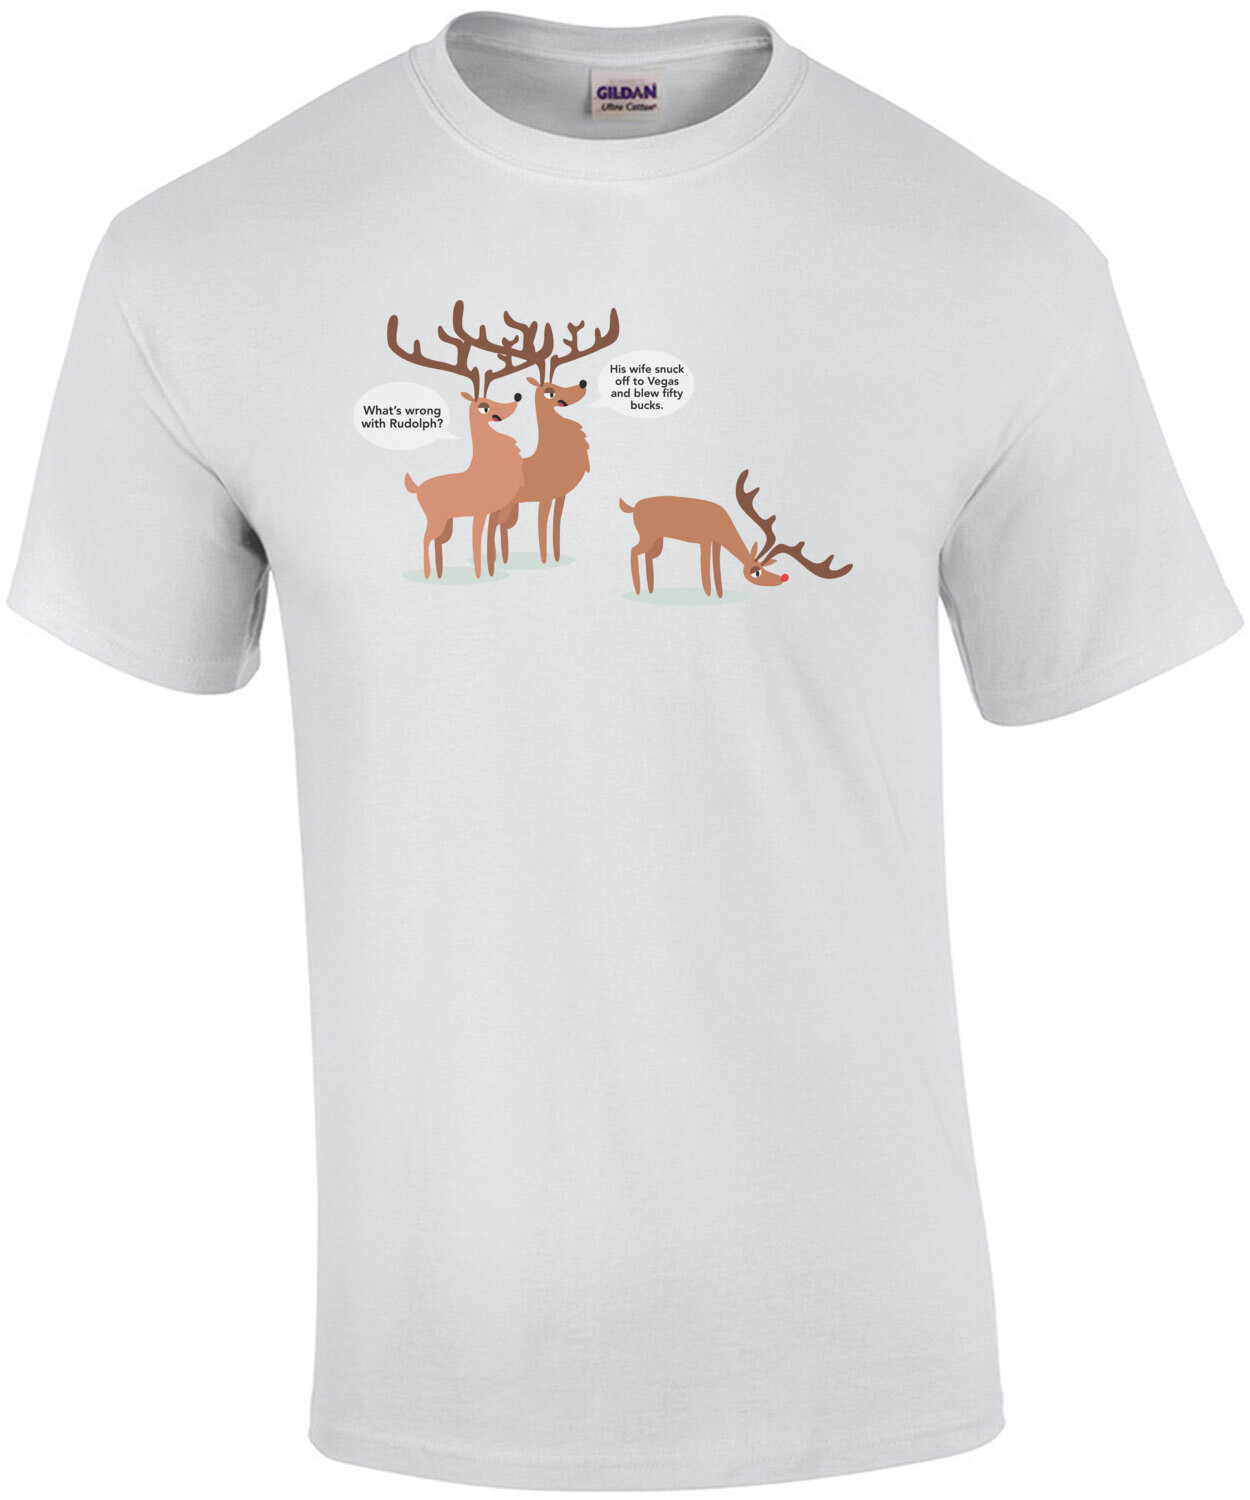 What's wrong with Rudolph? Funny Christmas T-Shirt